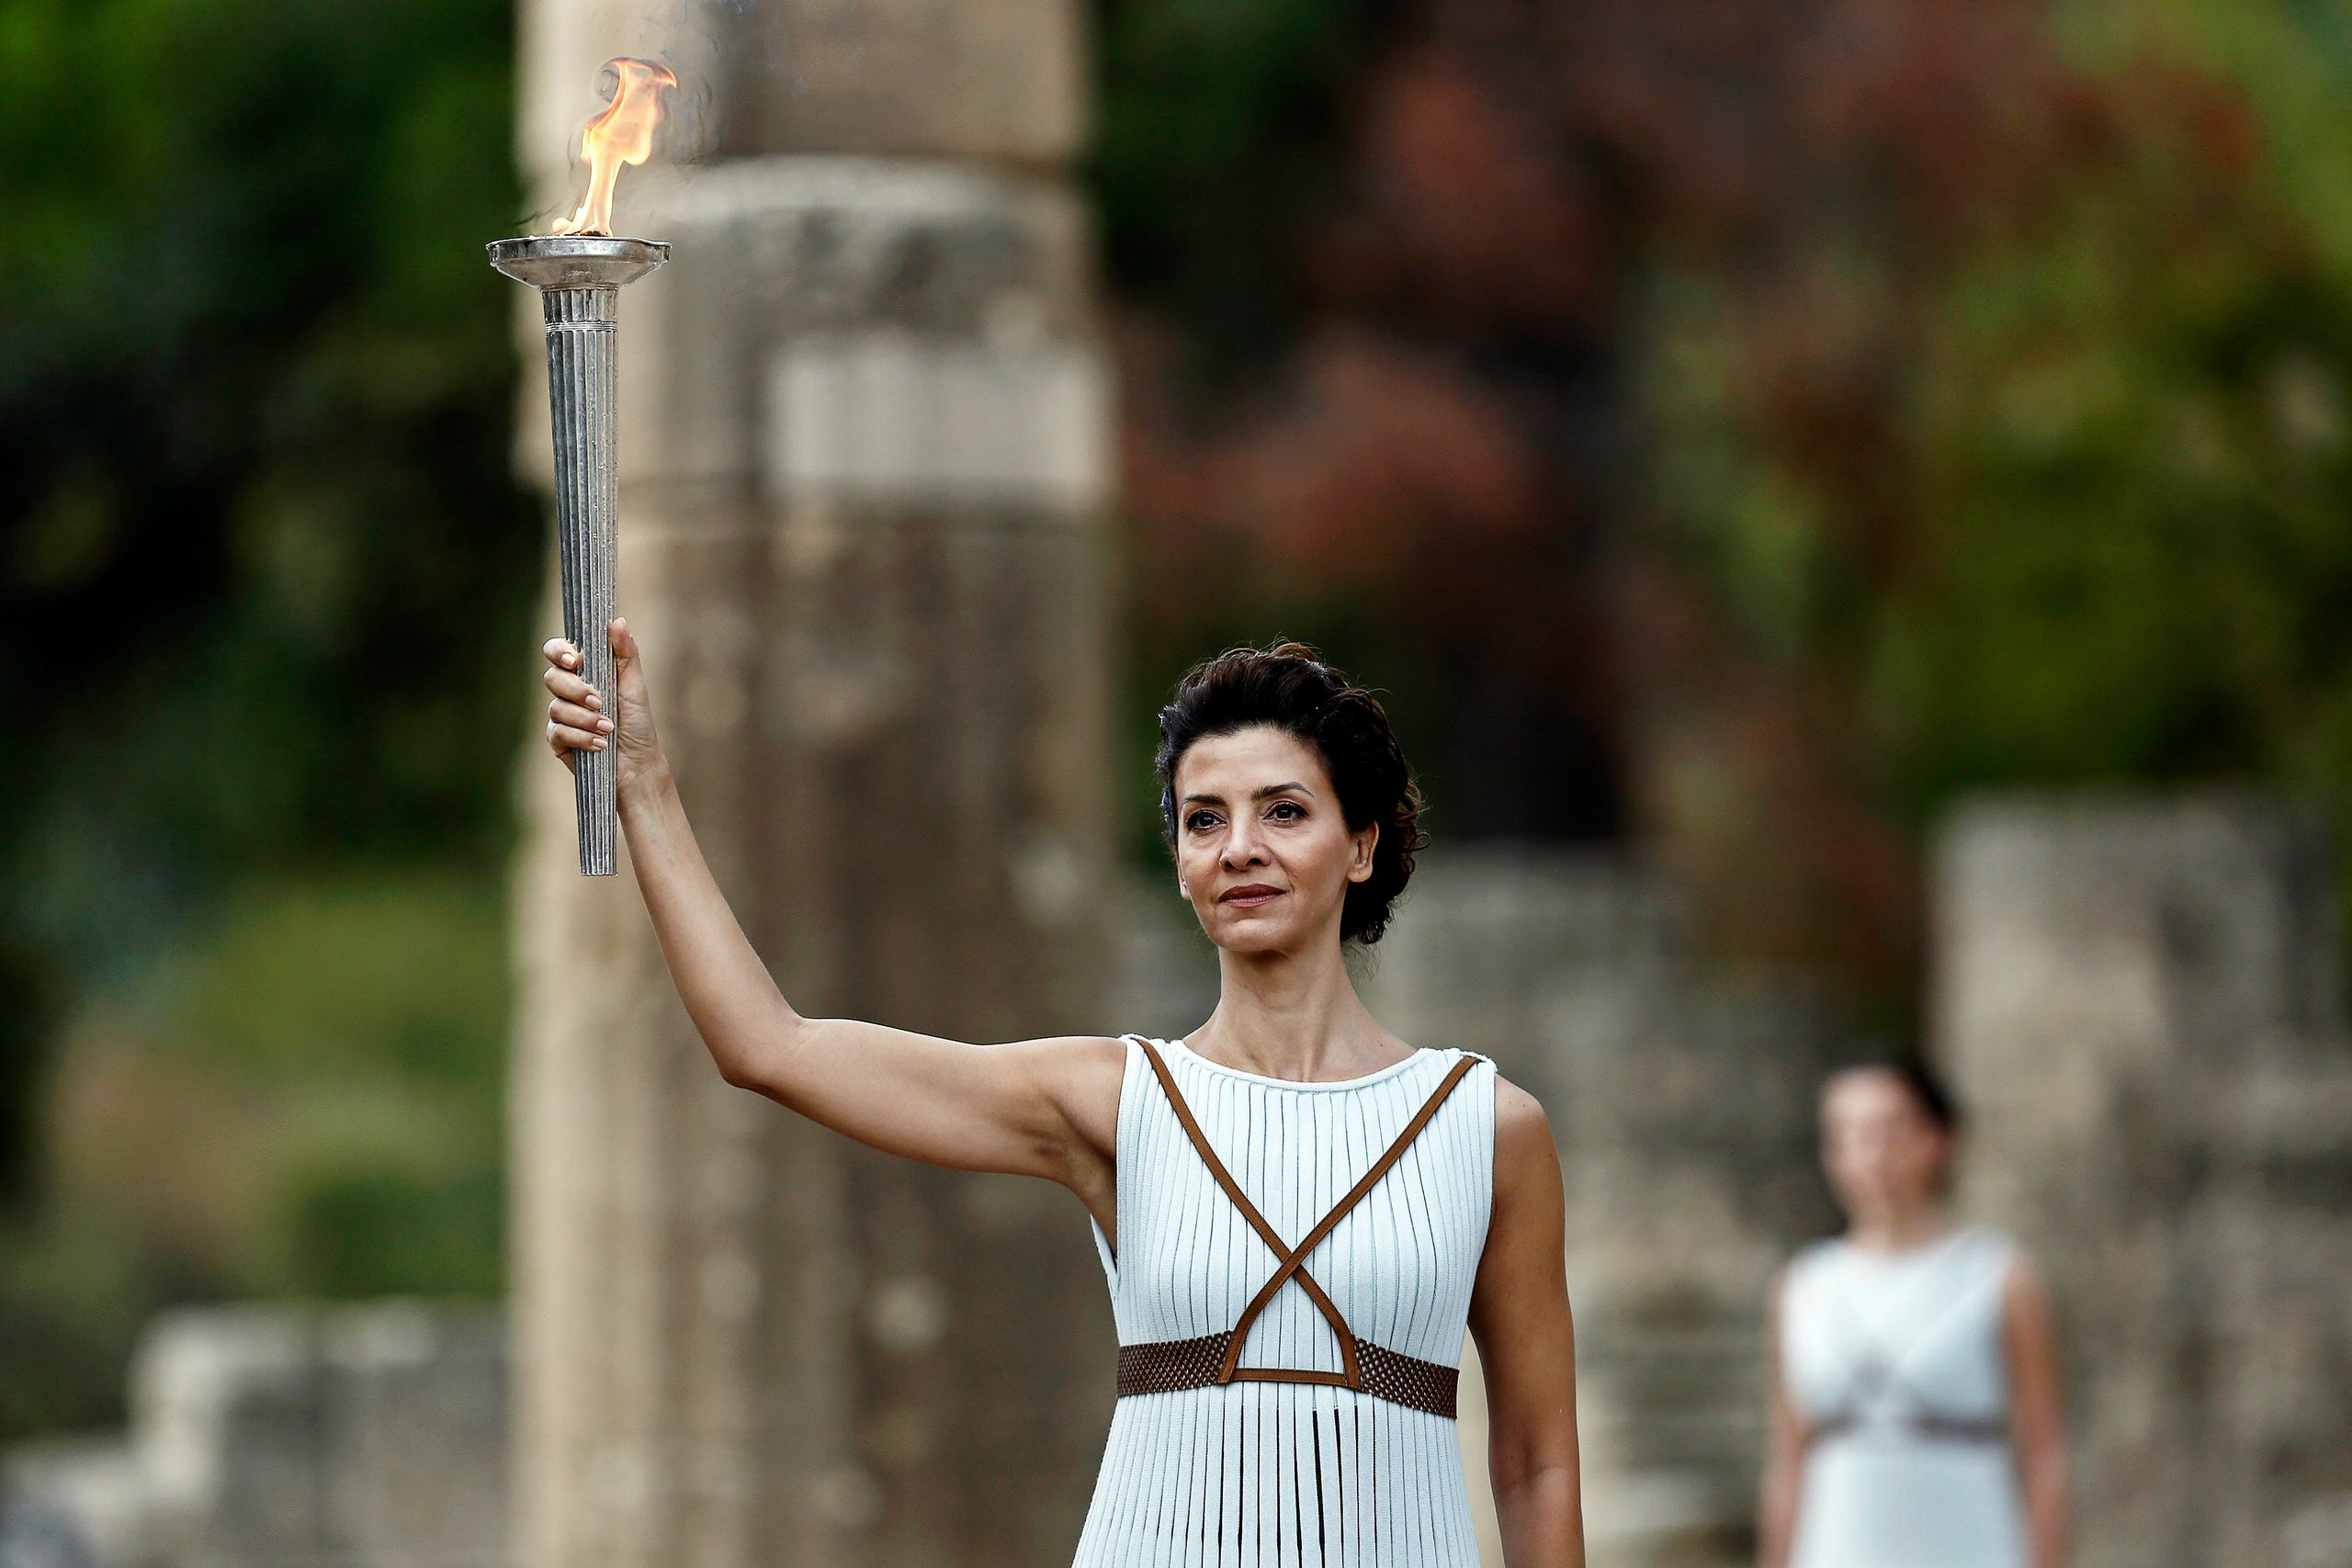 olympic torch lighting betting websites